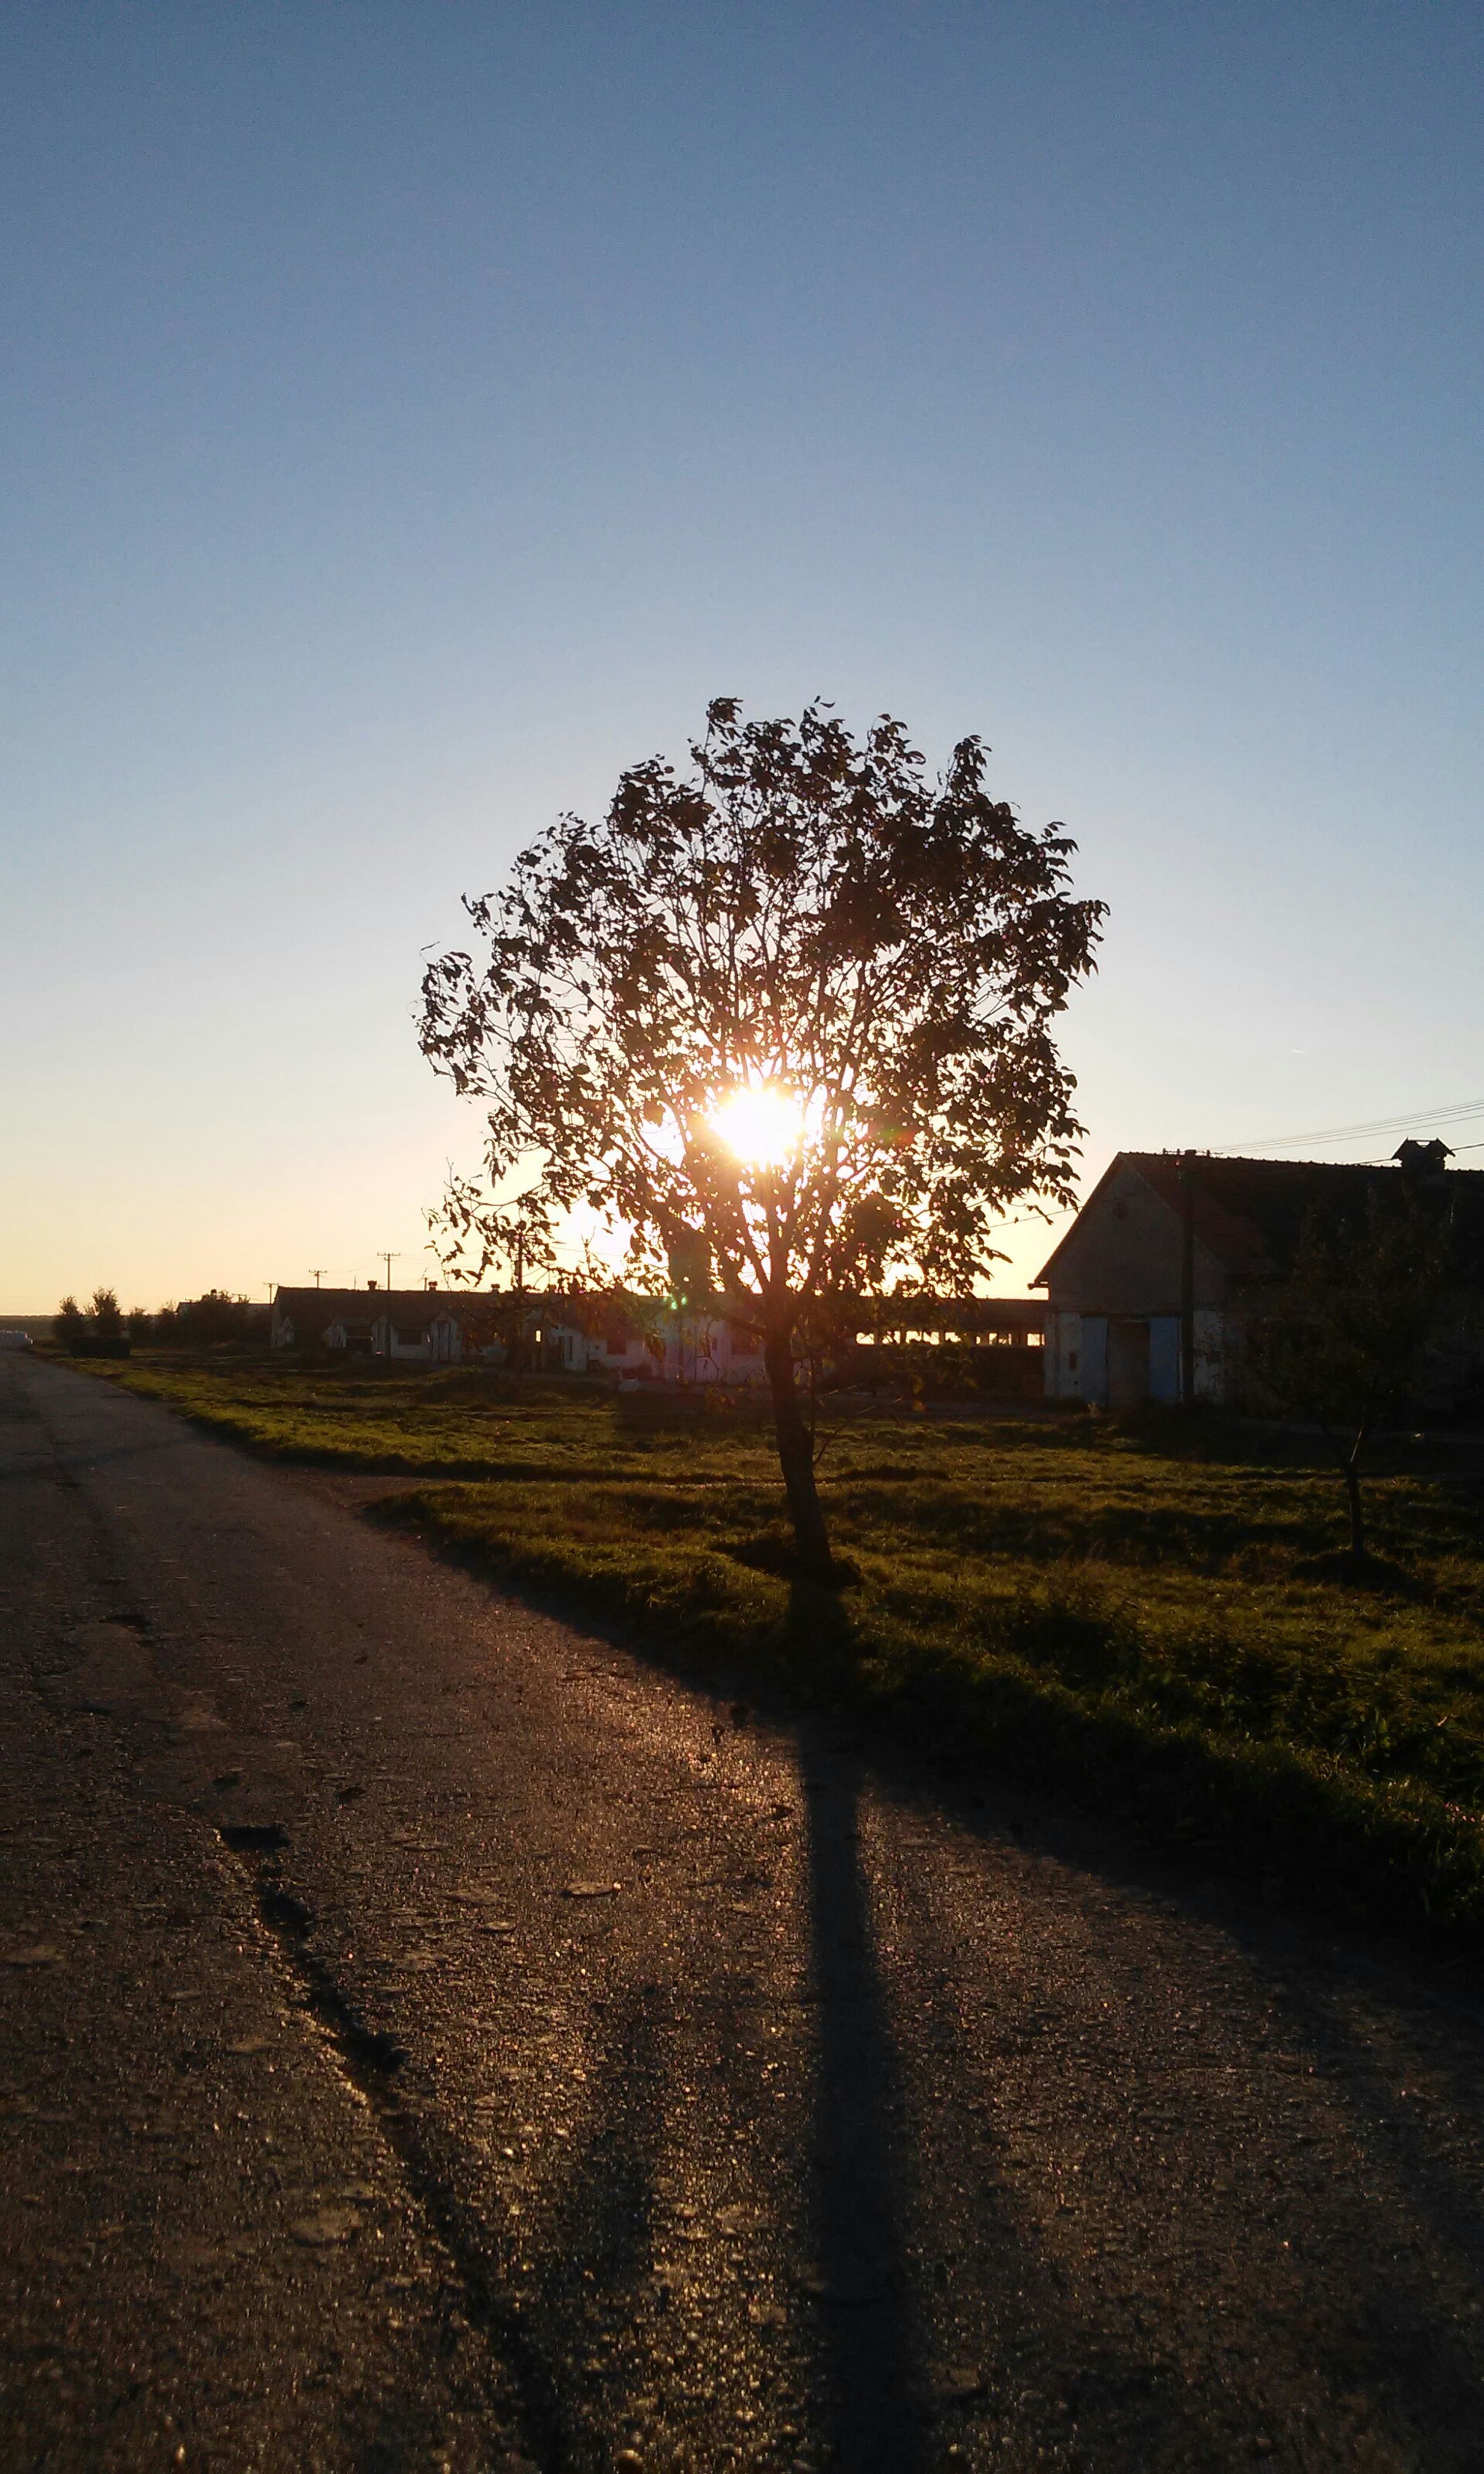 sun, silhouette, sunlight, clear sky, sunset, lens flare, sunbeam, tree, sky, field, road, landscape, street, tranquility, nature, tranquil scene, shadow, building exterior, outdoors, bare tree